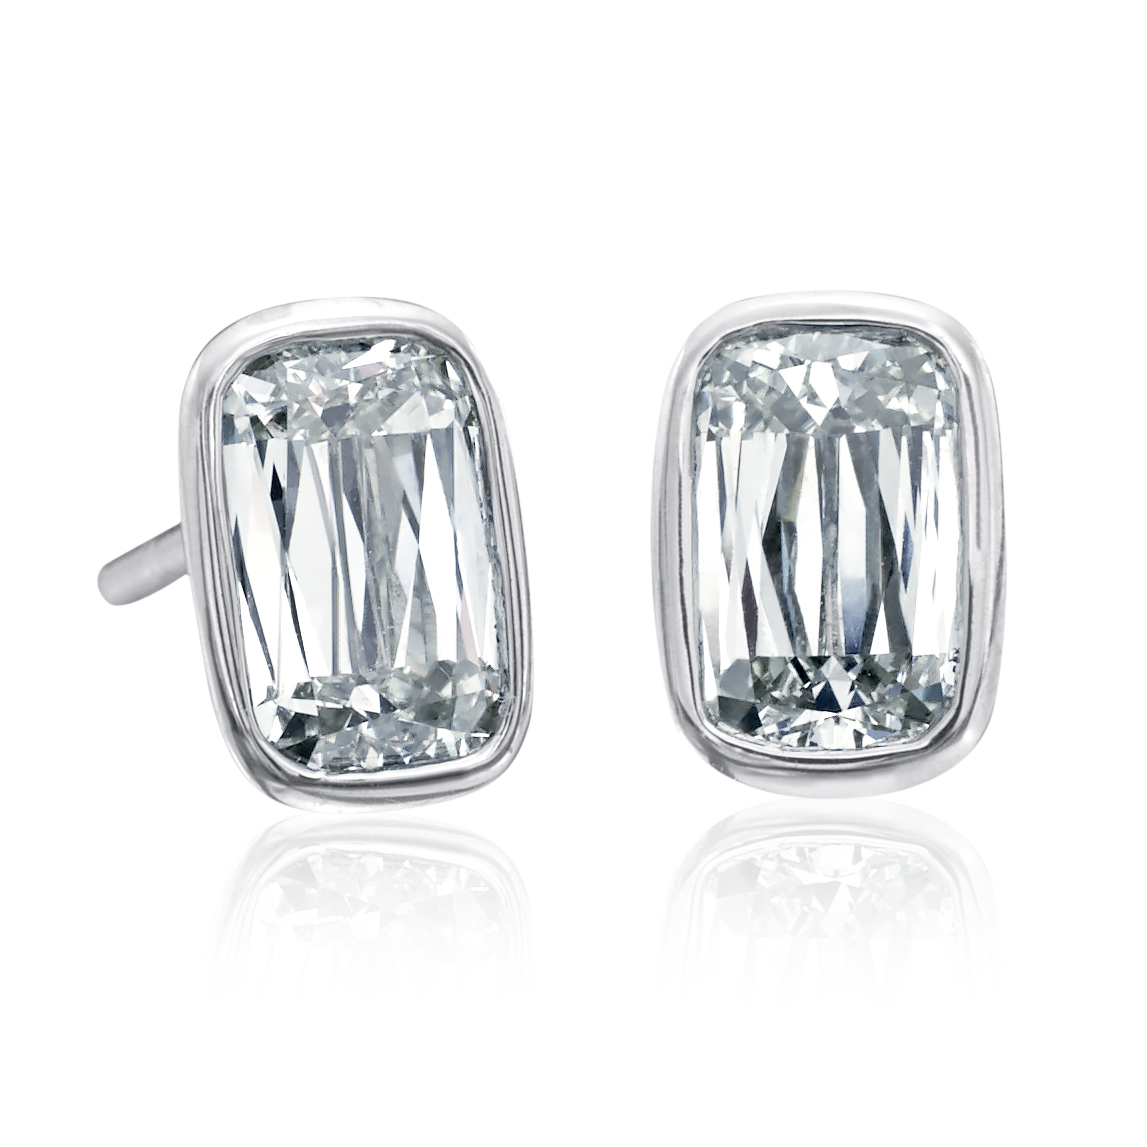 ASHOKA Stud Earrings